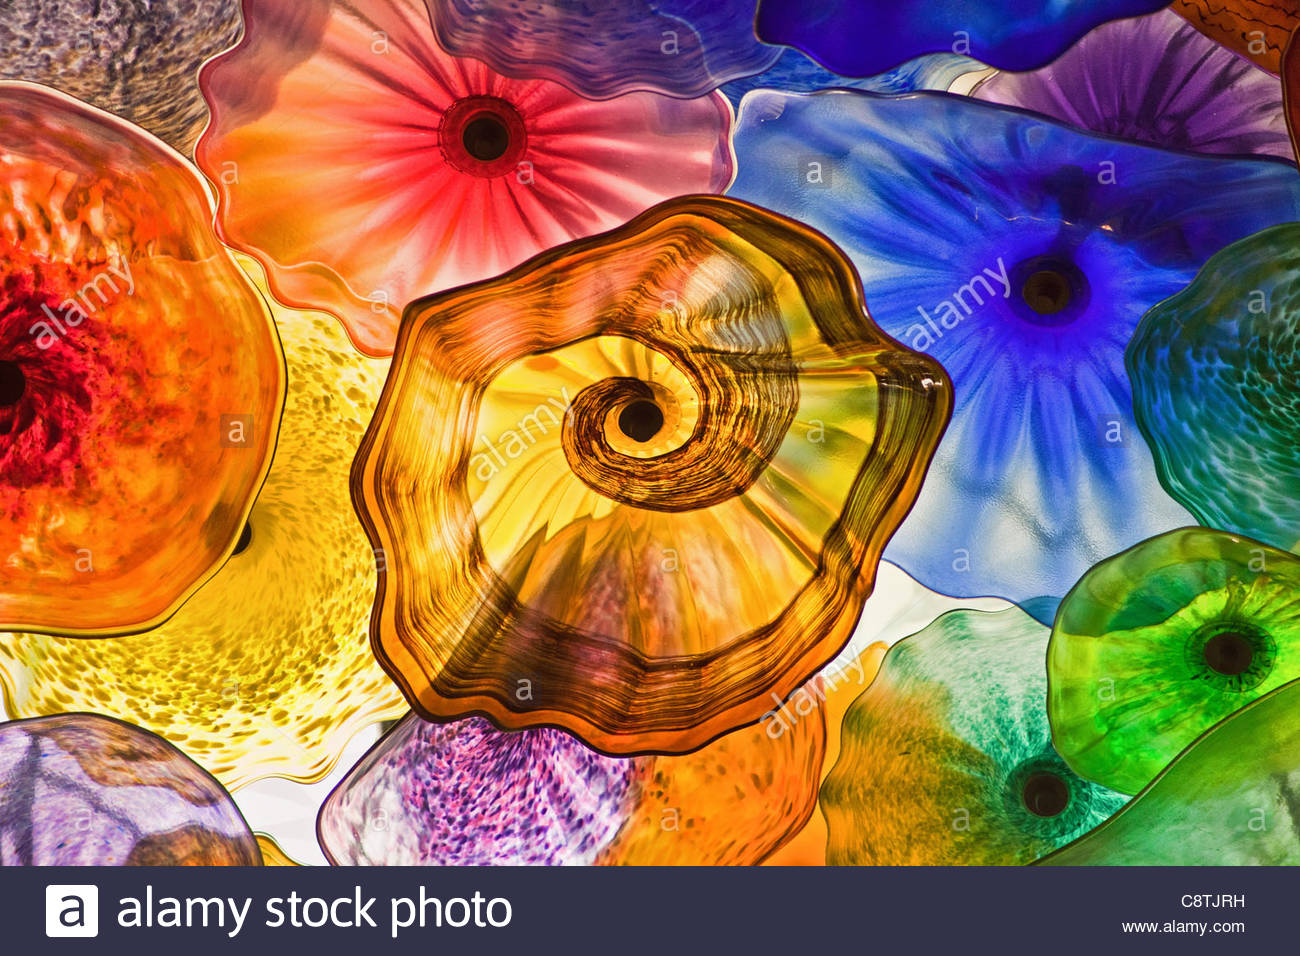 Dale Chihuly Stock Photos & Dale Chihuly Stock Images.